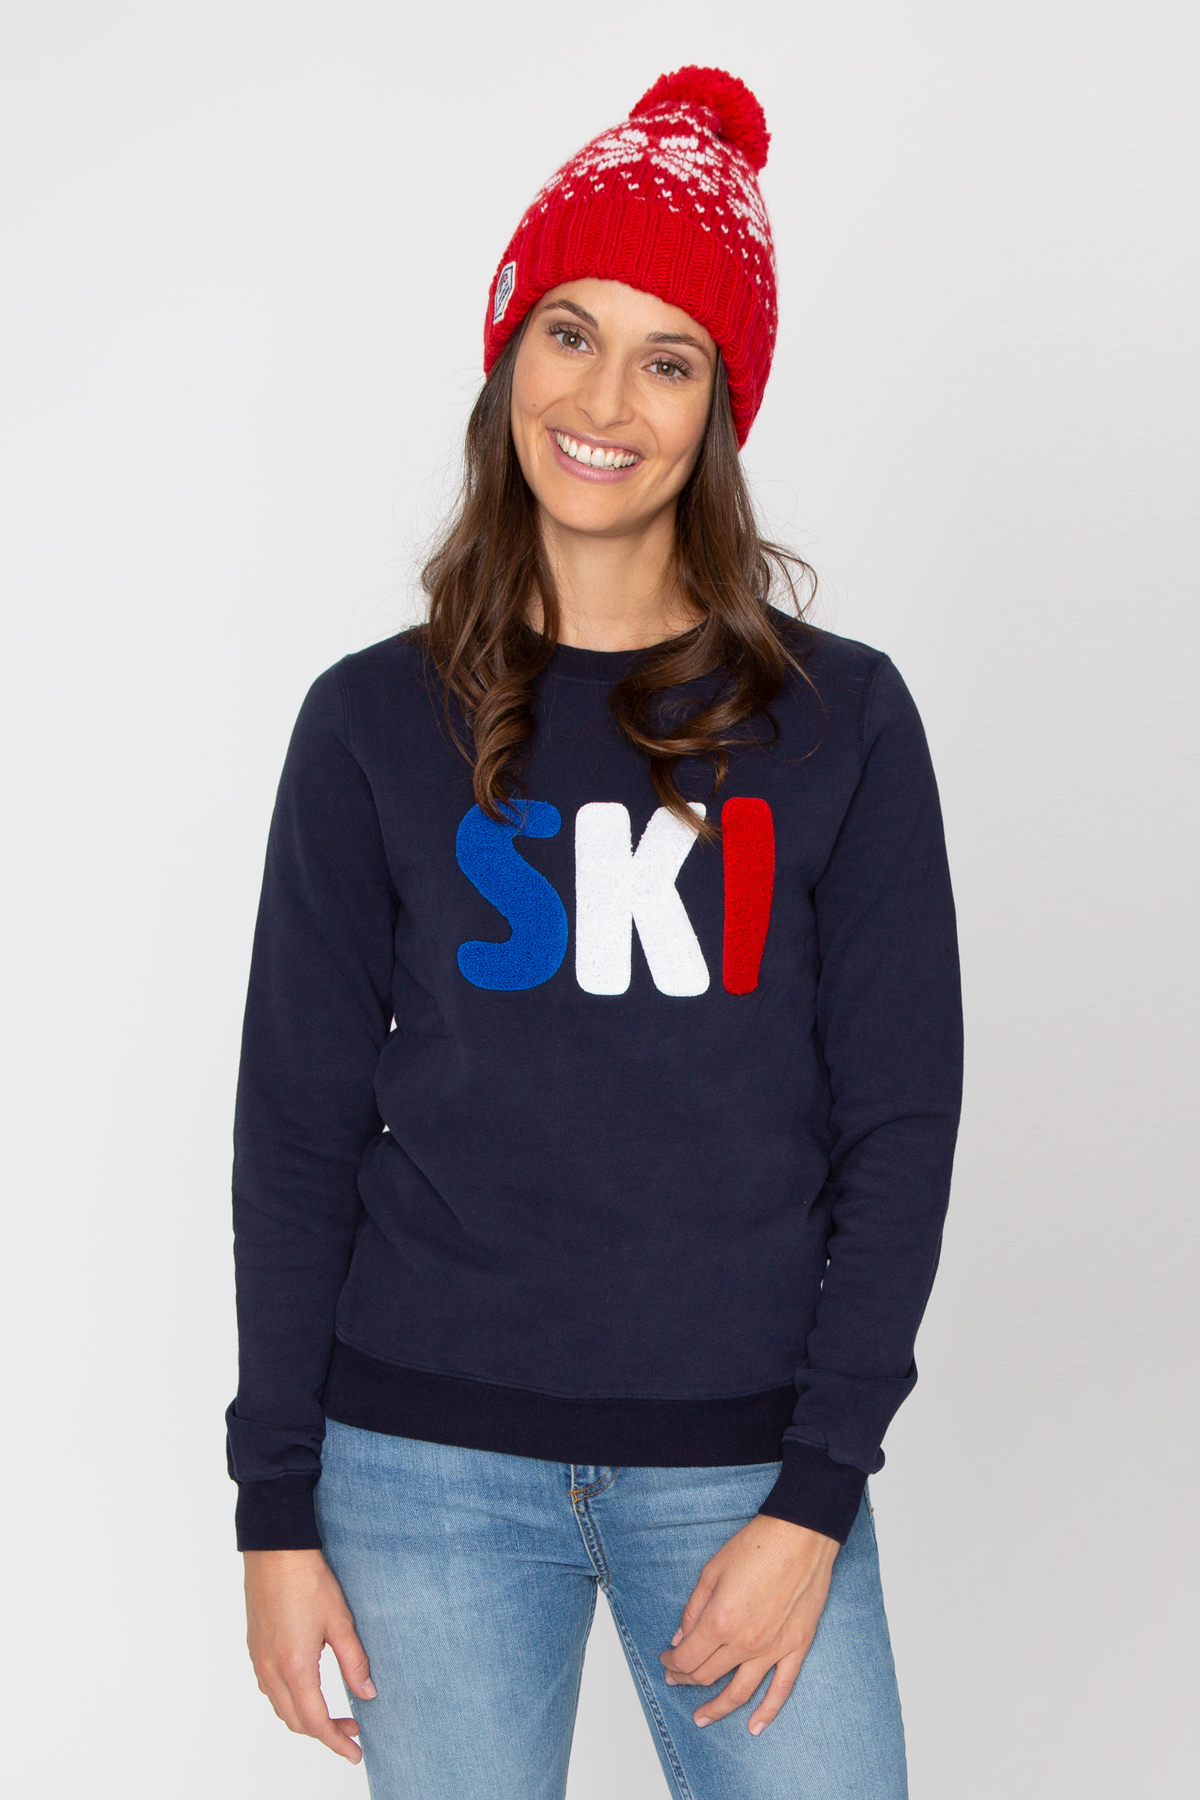 Sweat SKI French Disorder